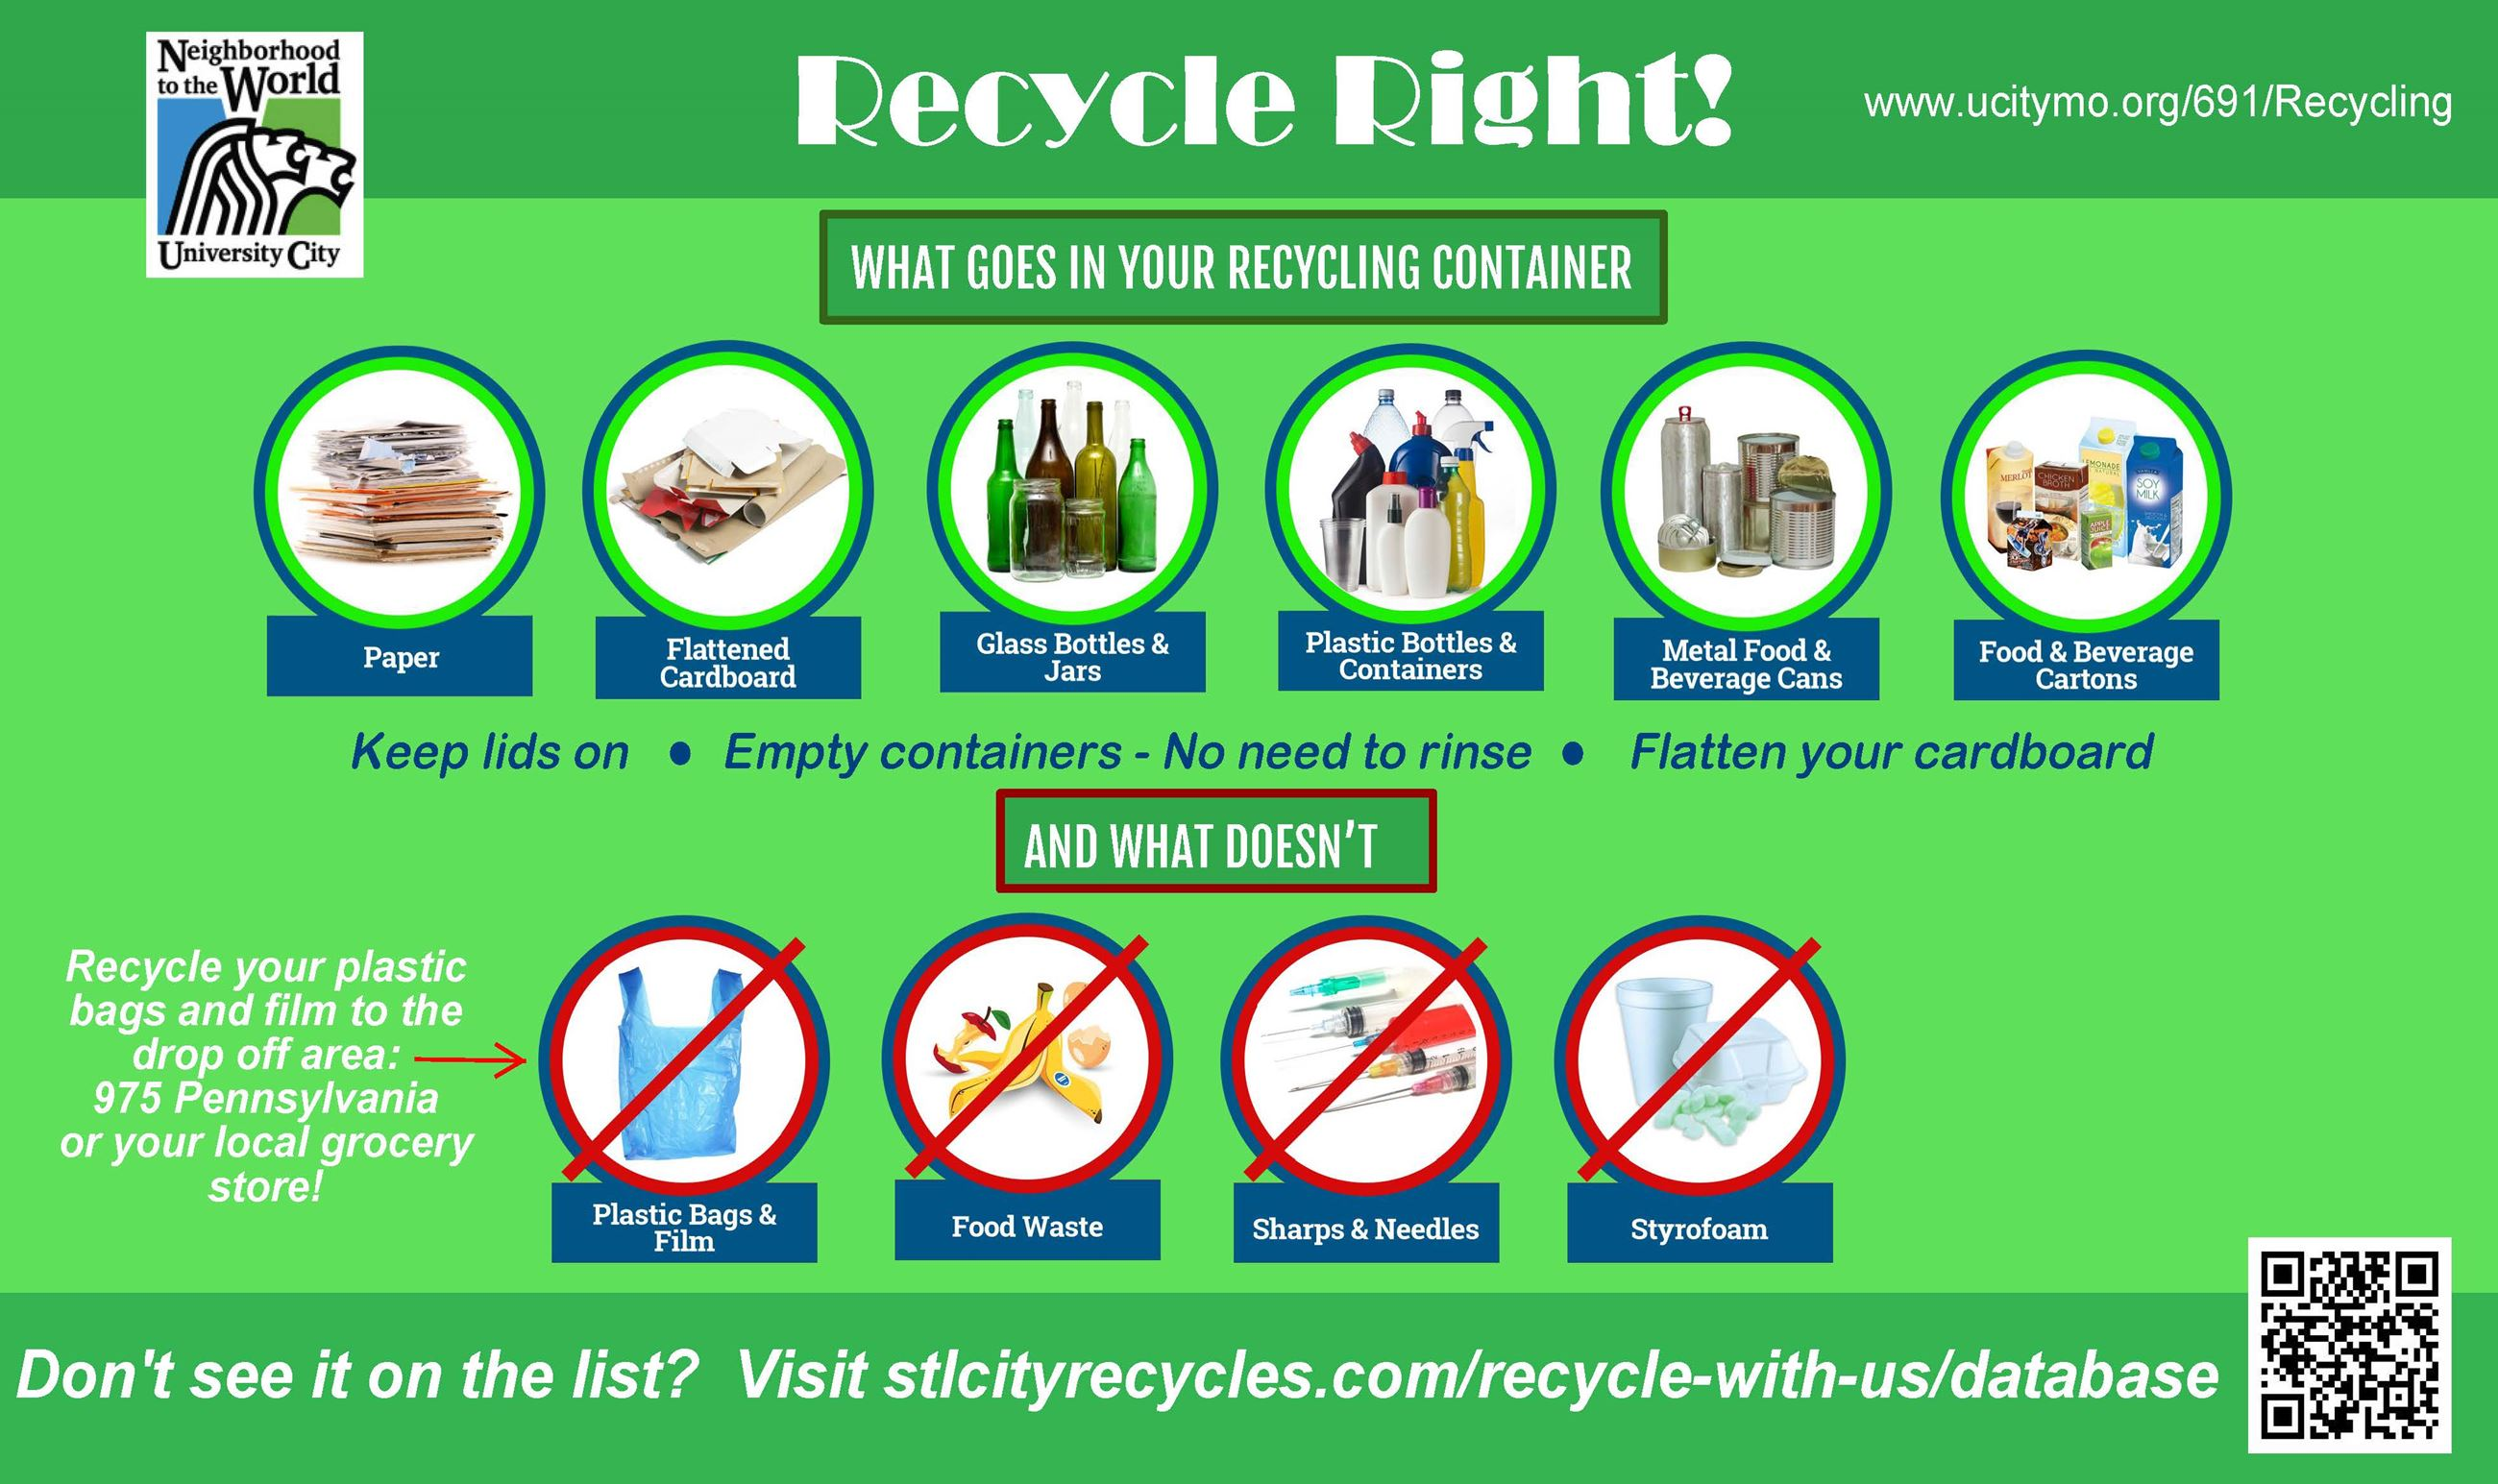 Regional Recycling Message U CITY rev 2